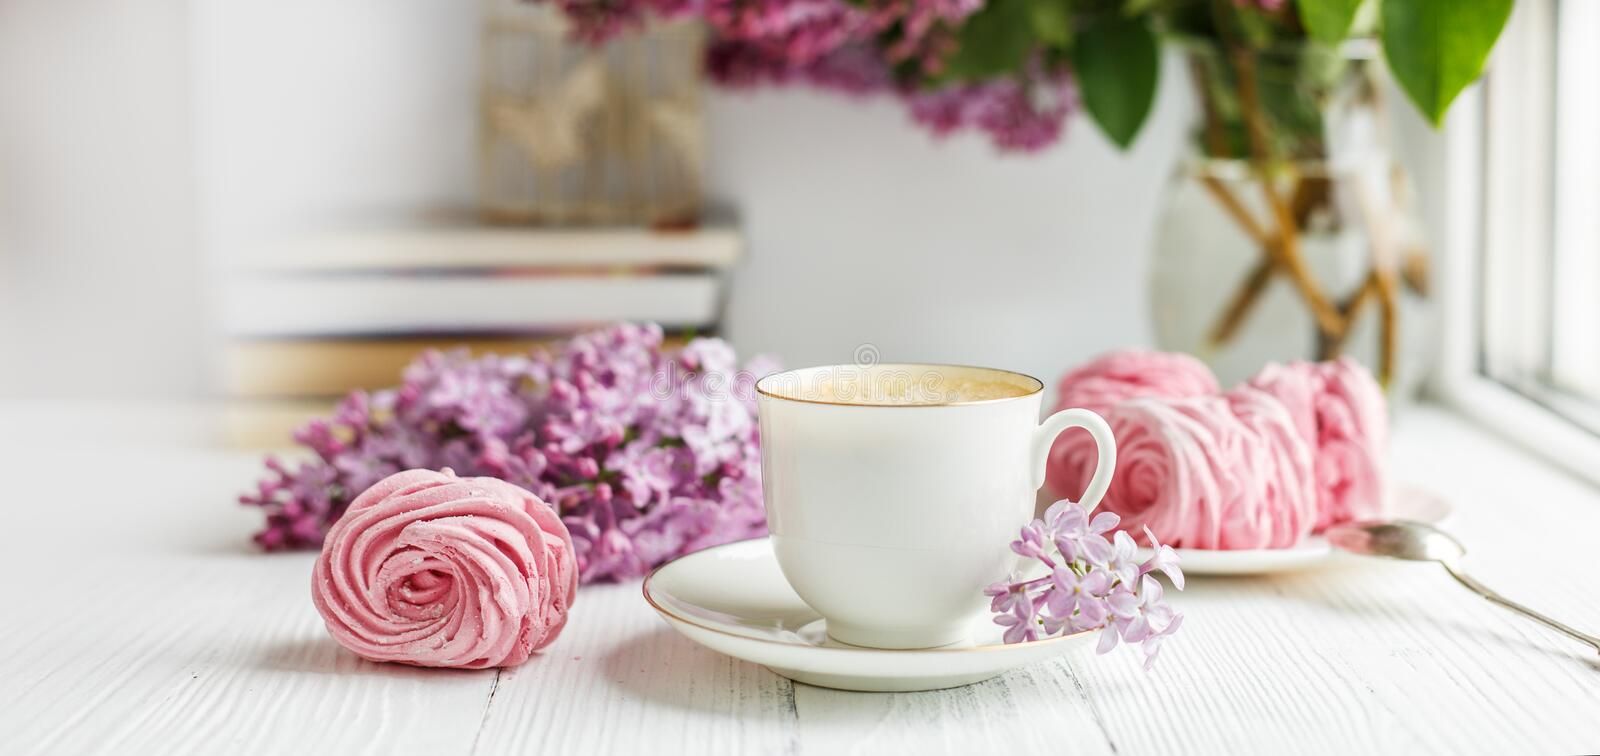 Bouquet of lilacs, cup of coffee, homemade marshmallow and books. Romantic spring morning. Horizontal banner royalty free stock image